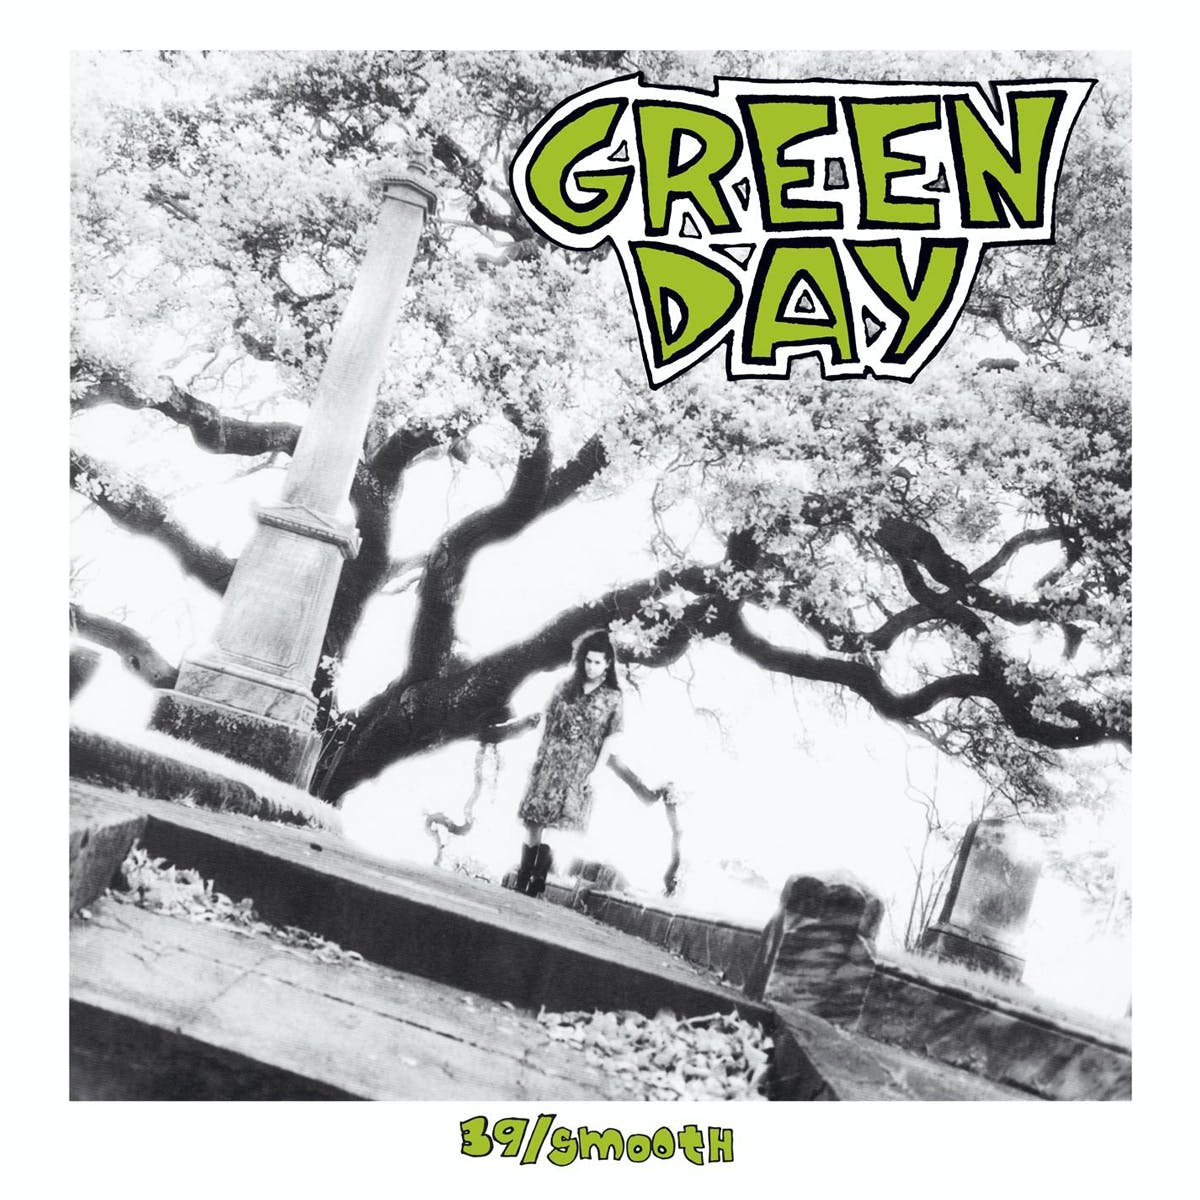 The cover of Green Day's debut album, 39/Smooth